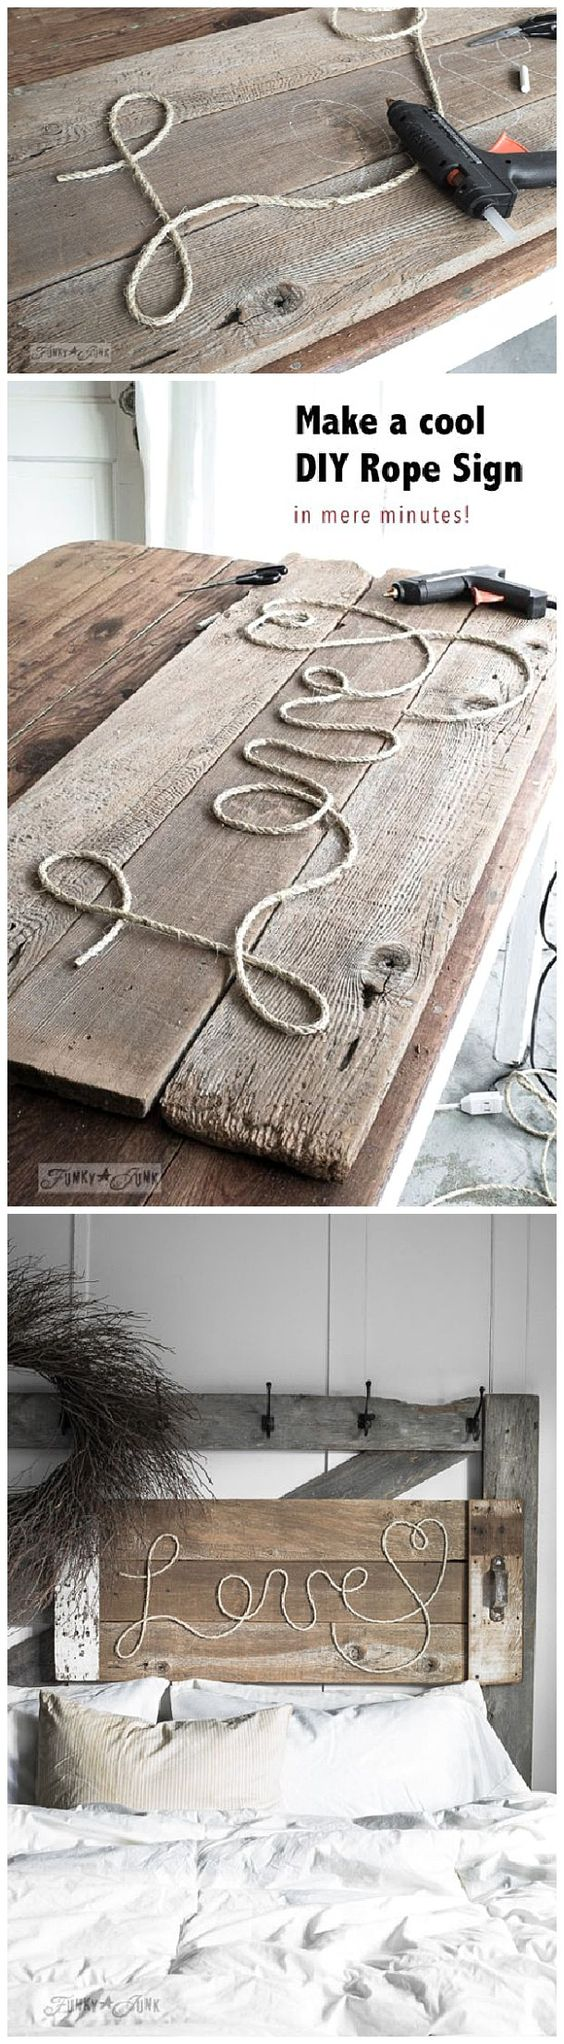 Make a cool DIY Rope Sign like this one... in minutes! So cool, cheap and fun to personalize for anyone on your gift list! DIY Rope Sign Tutorial | funkyjunkinteriors-donna: